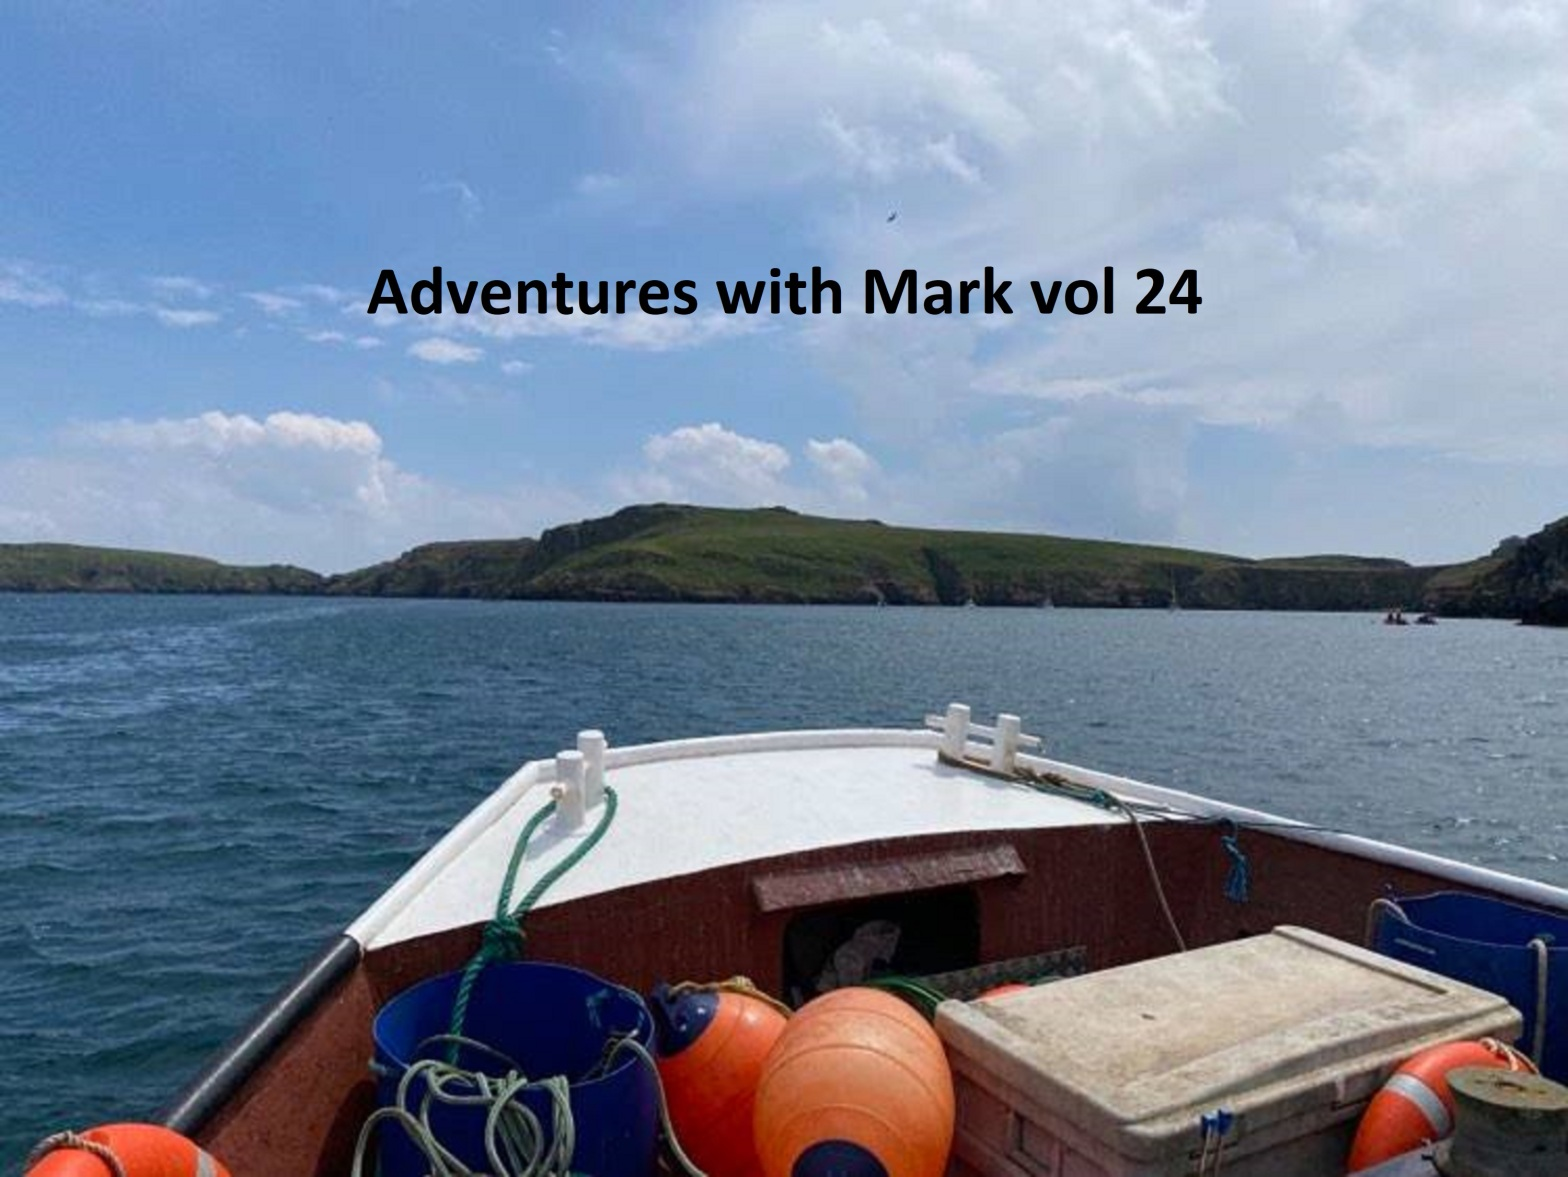 Pembrokeshire Diving ¦ War Grave Wreck Dive ¦ MV Lucy Wreck ¦ 76yr old Dad doing handstands! Adventures with Mark vol 24